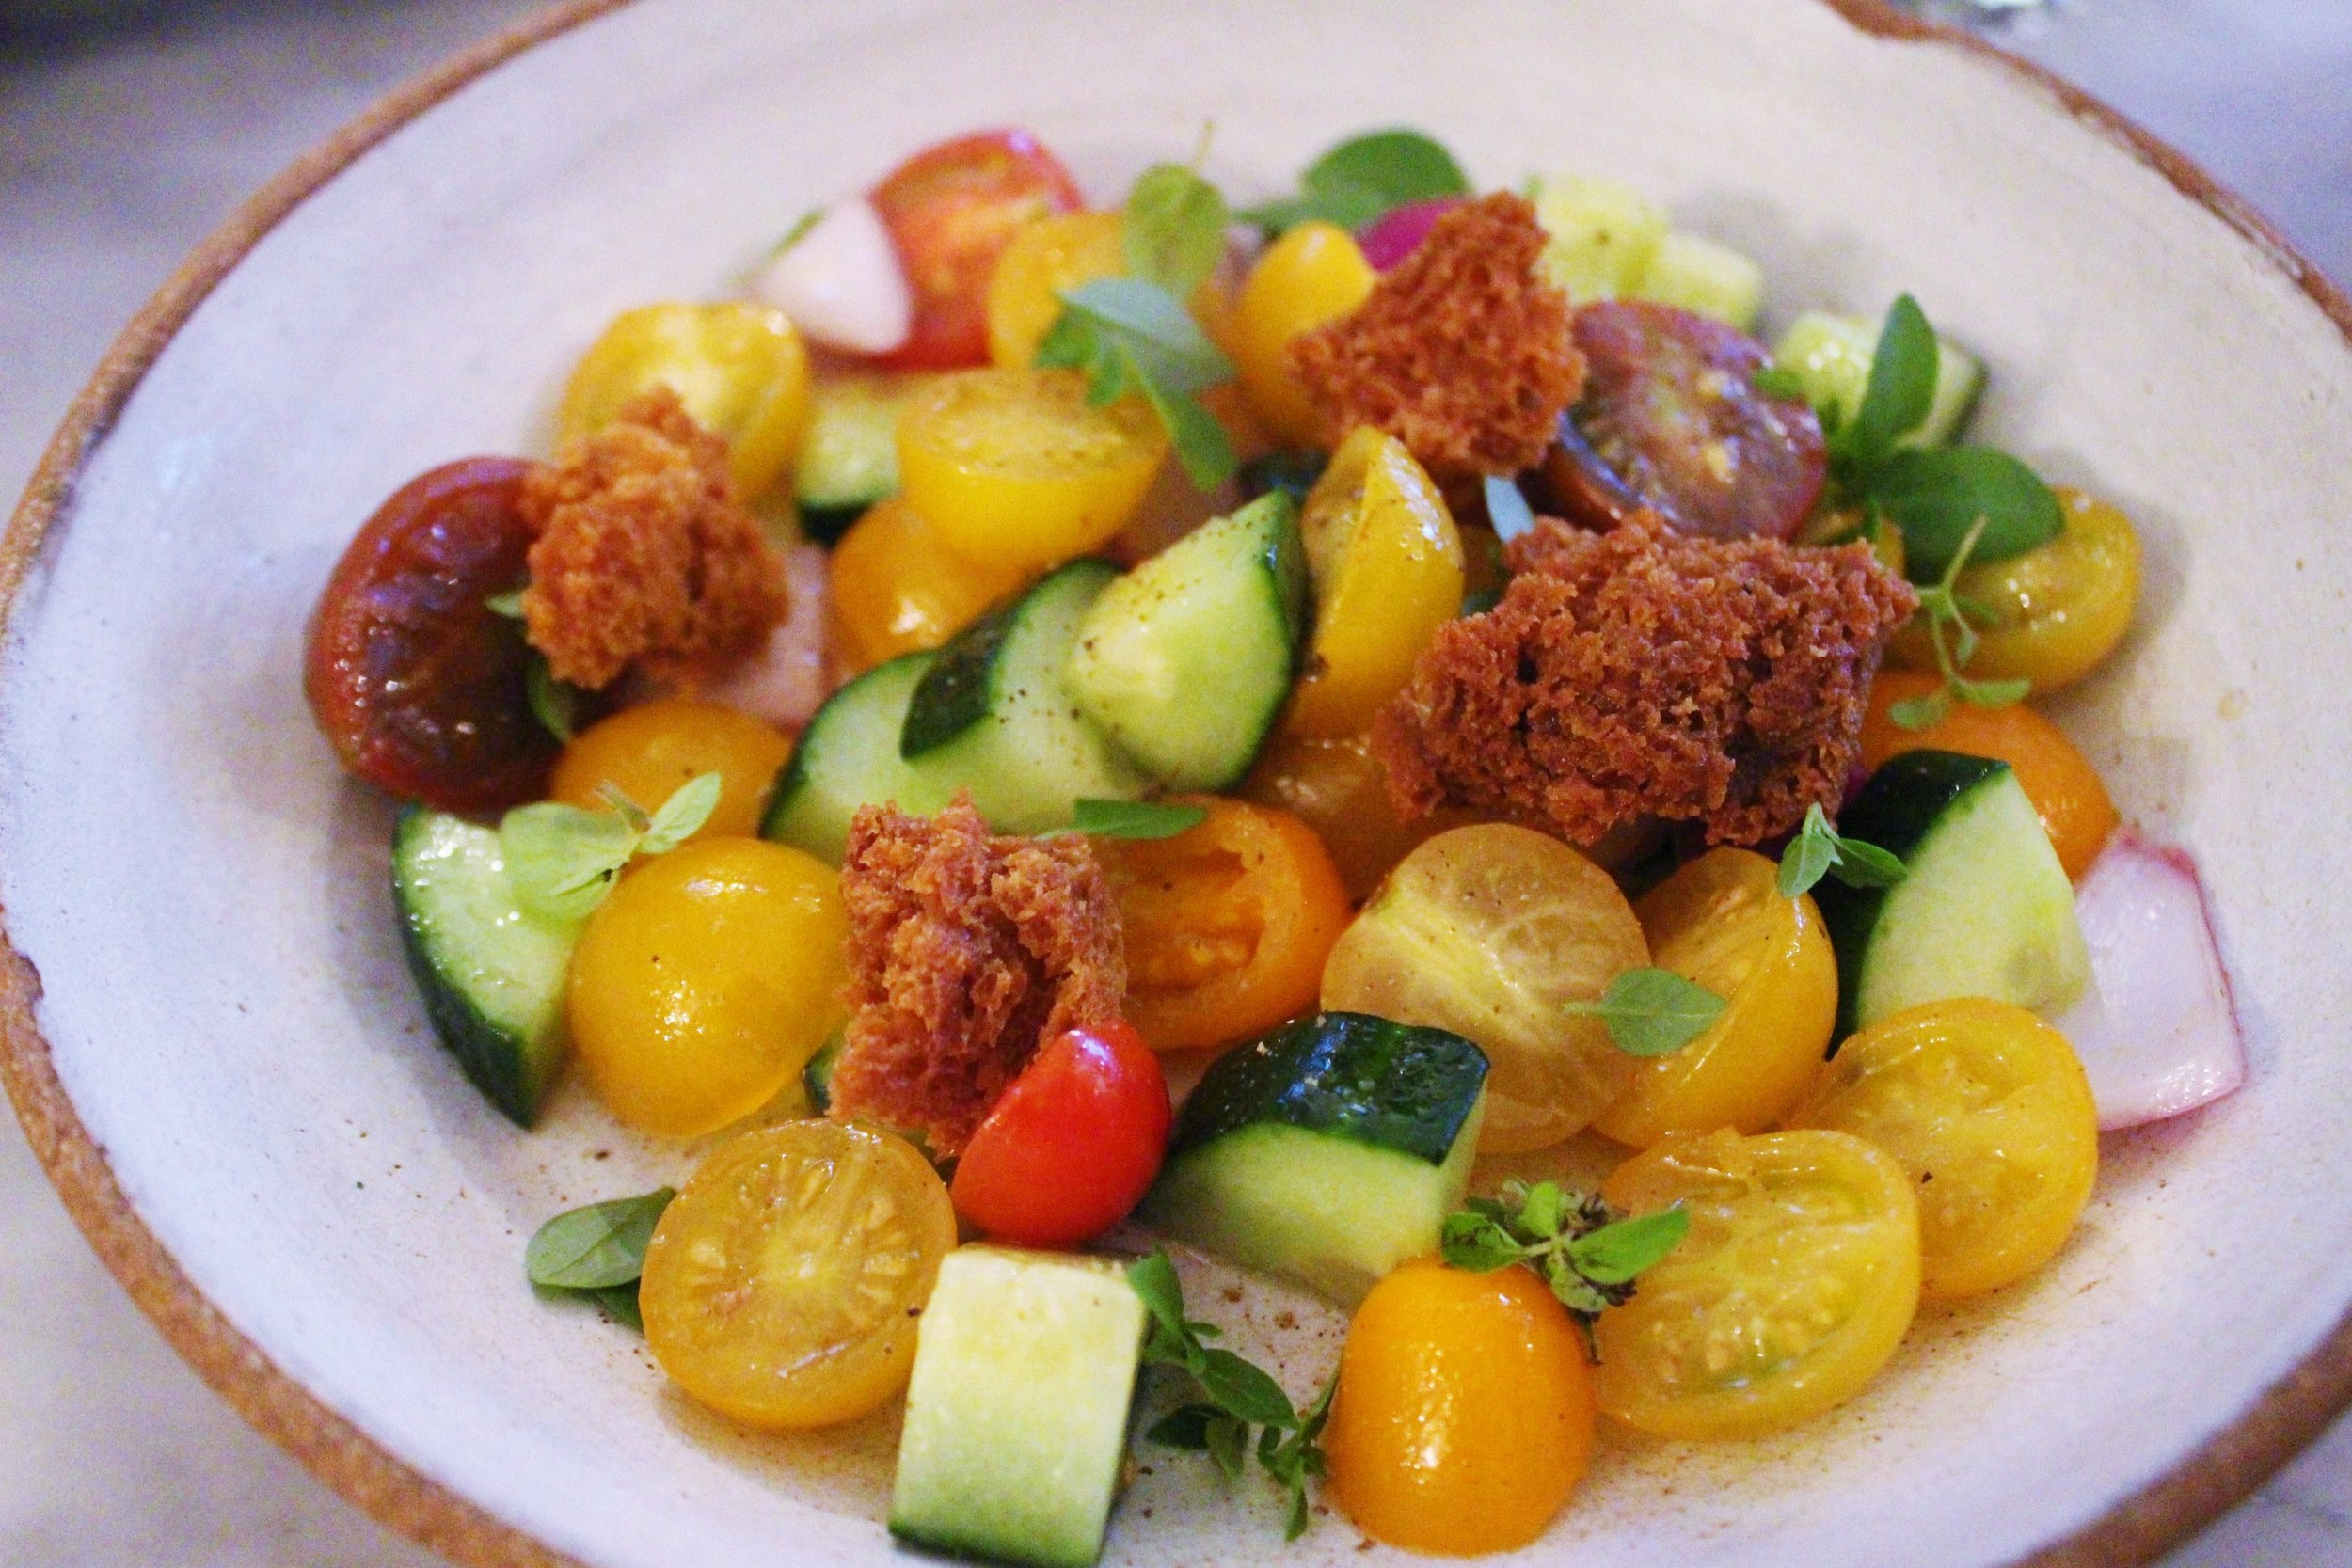 Salad of Cherry Tomatoes, Cucumbers, Fried Sourdough, and Red Onion at Ellsworth in Paris